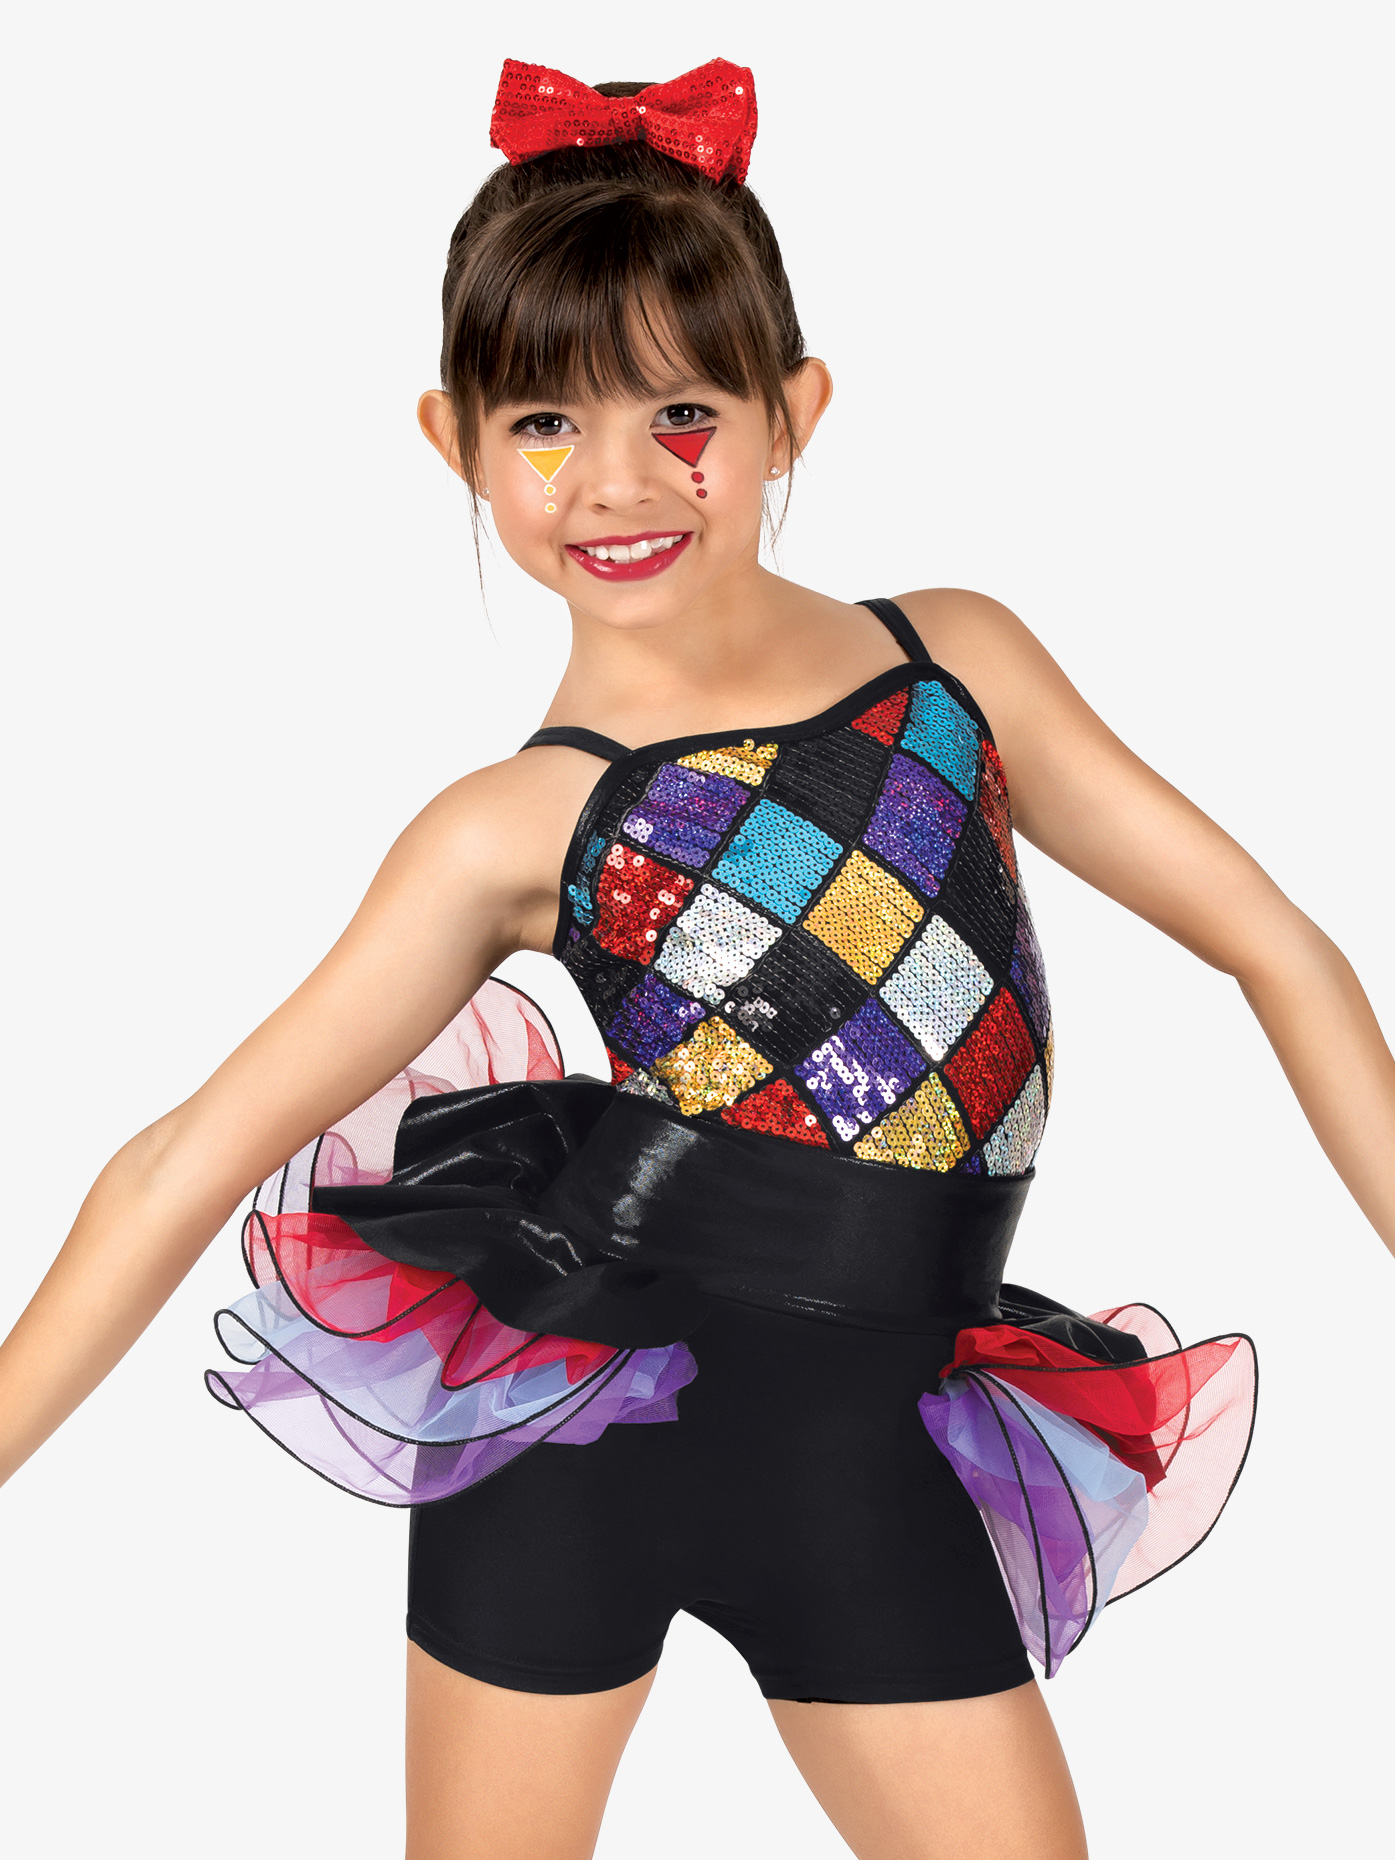 Gracie Girls Harlequin Sequin Camisole Costume Shorty Unitard GRA108